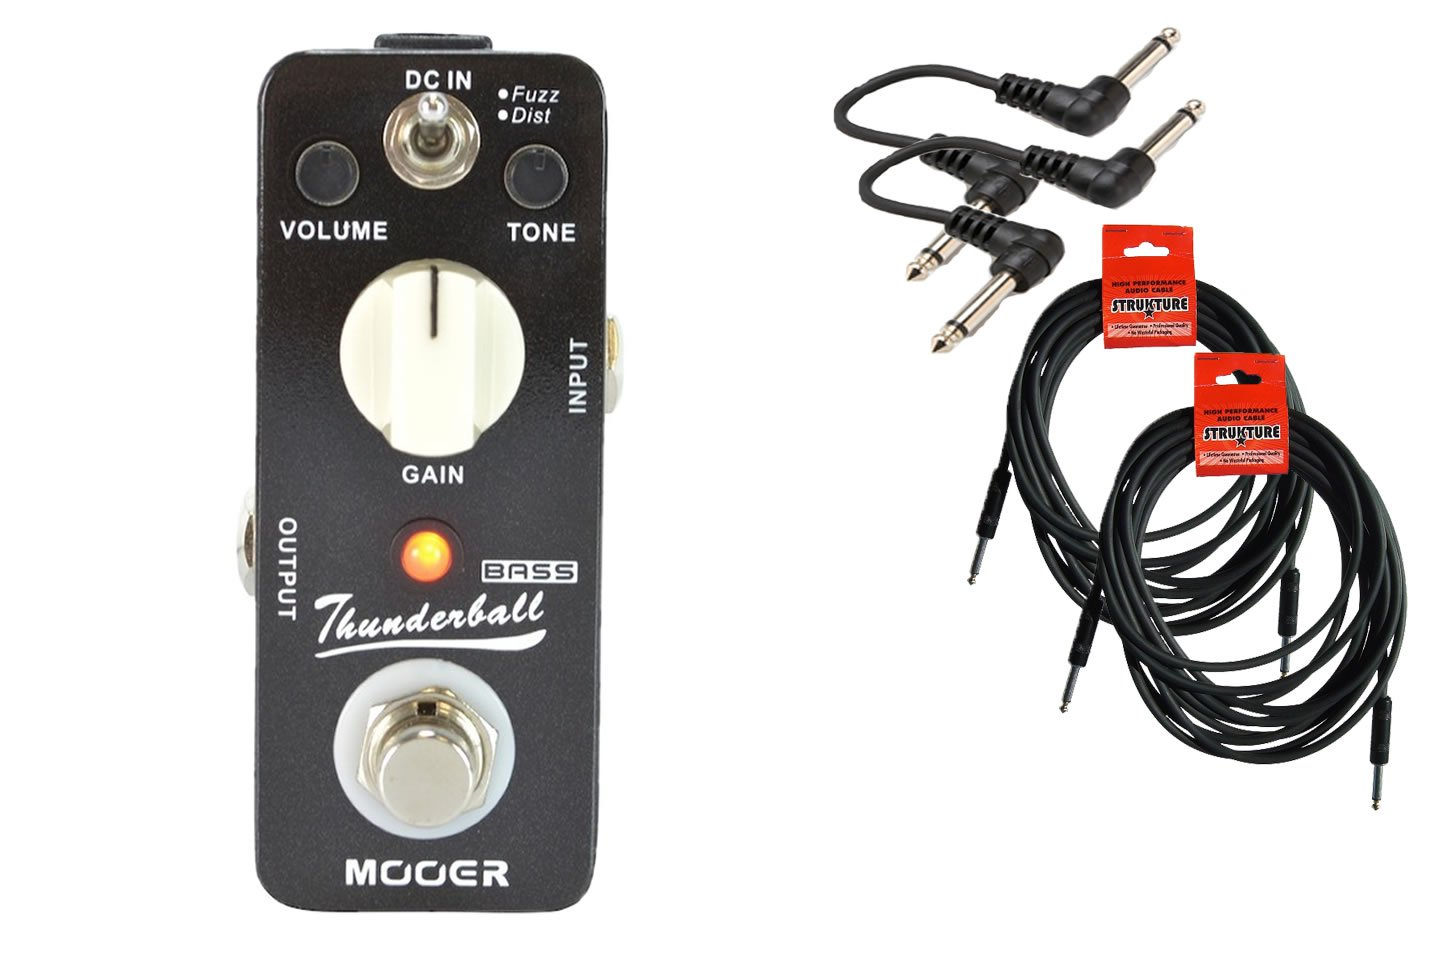 Mooer Audio Thunderball Bass Distortion Cable Bundle w/ 4 free Items: 2x 18.6' Strukture Cables, 2x Hosa Patch Cables hosa pro balanced rean dual 1 4 inch trs interconnect cable